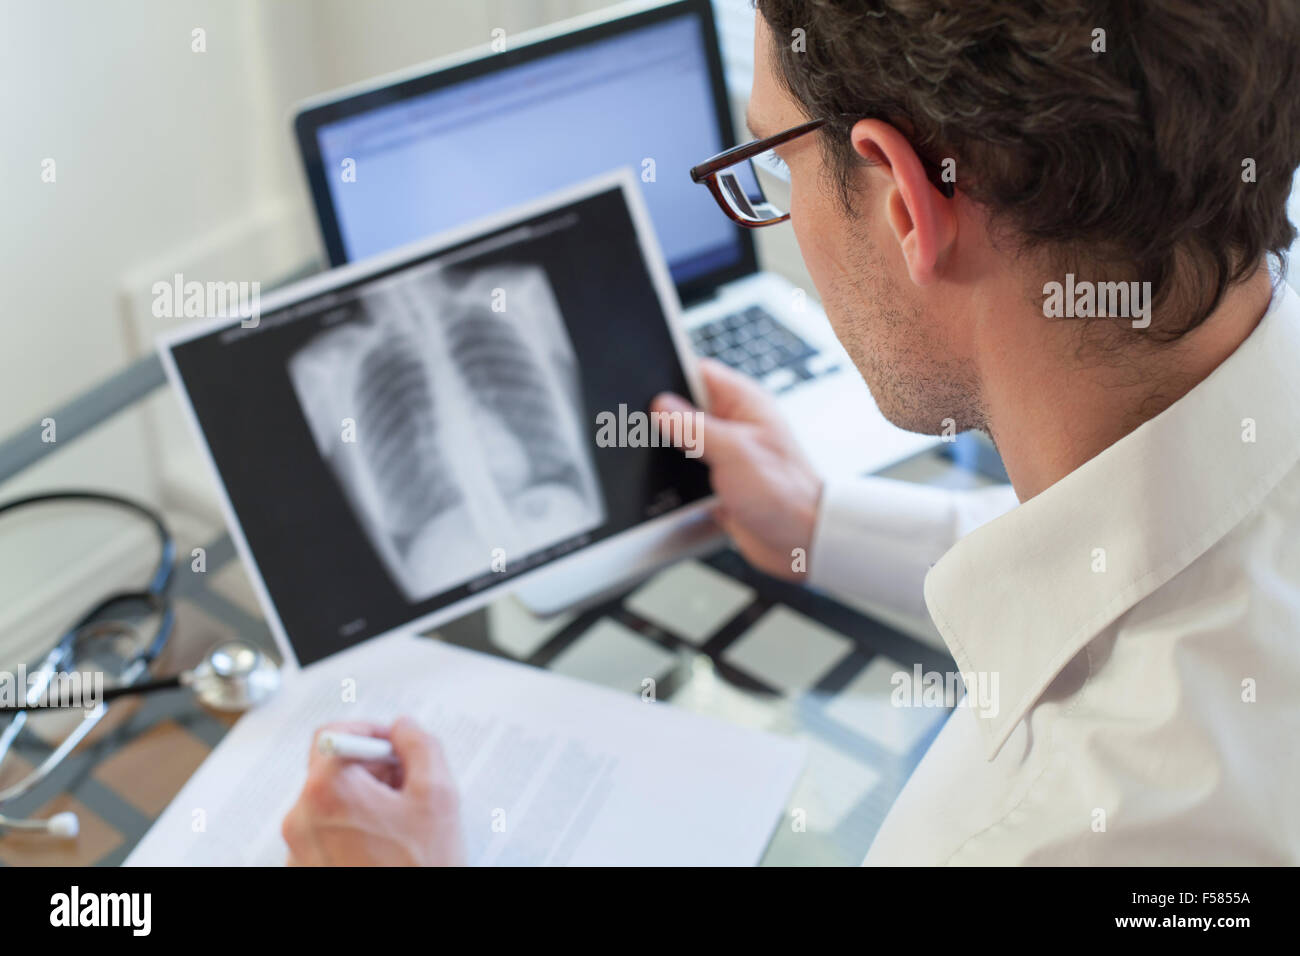 doctor looking at x-ray of lungs and writing diagnosis - Stock Image